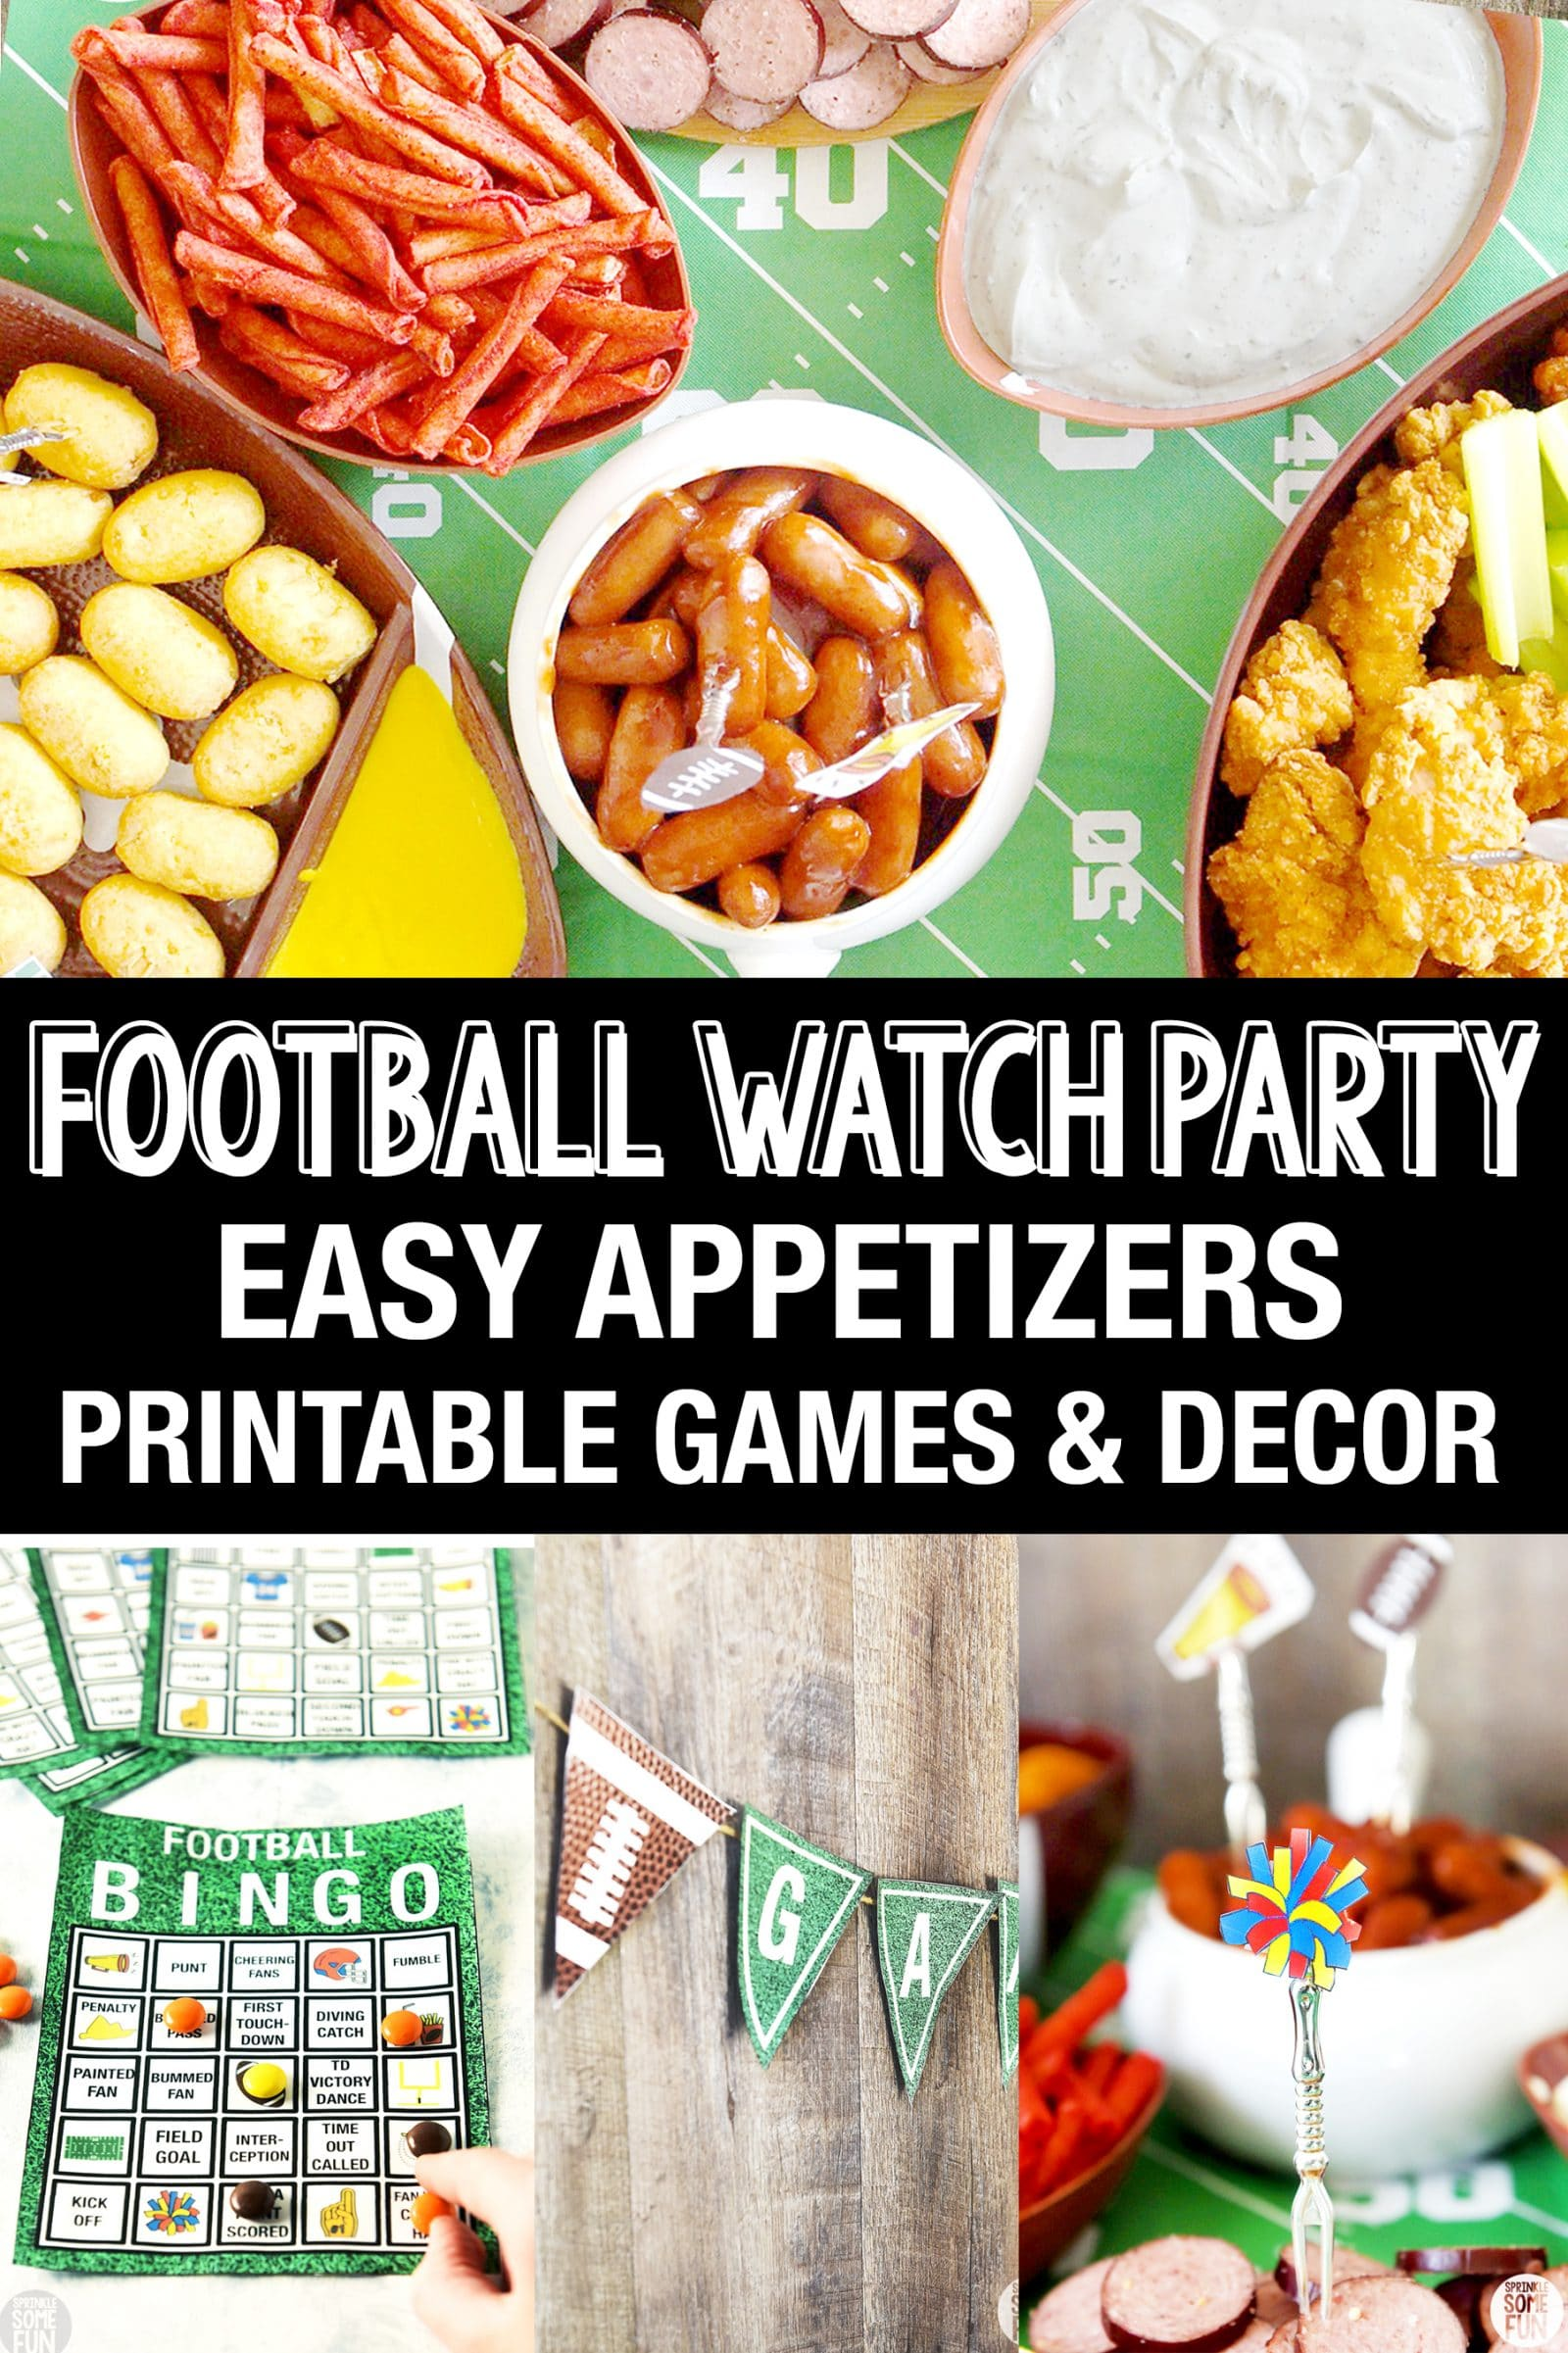 Football Watch Party with printables and games